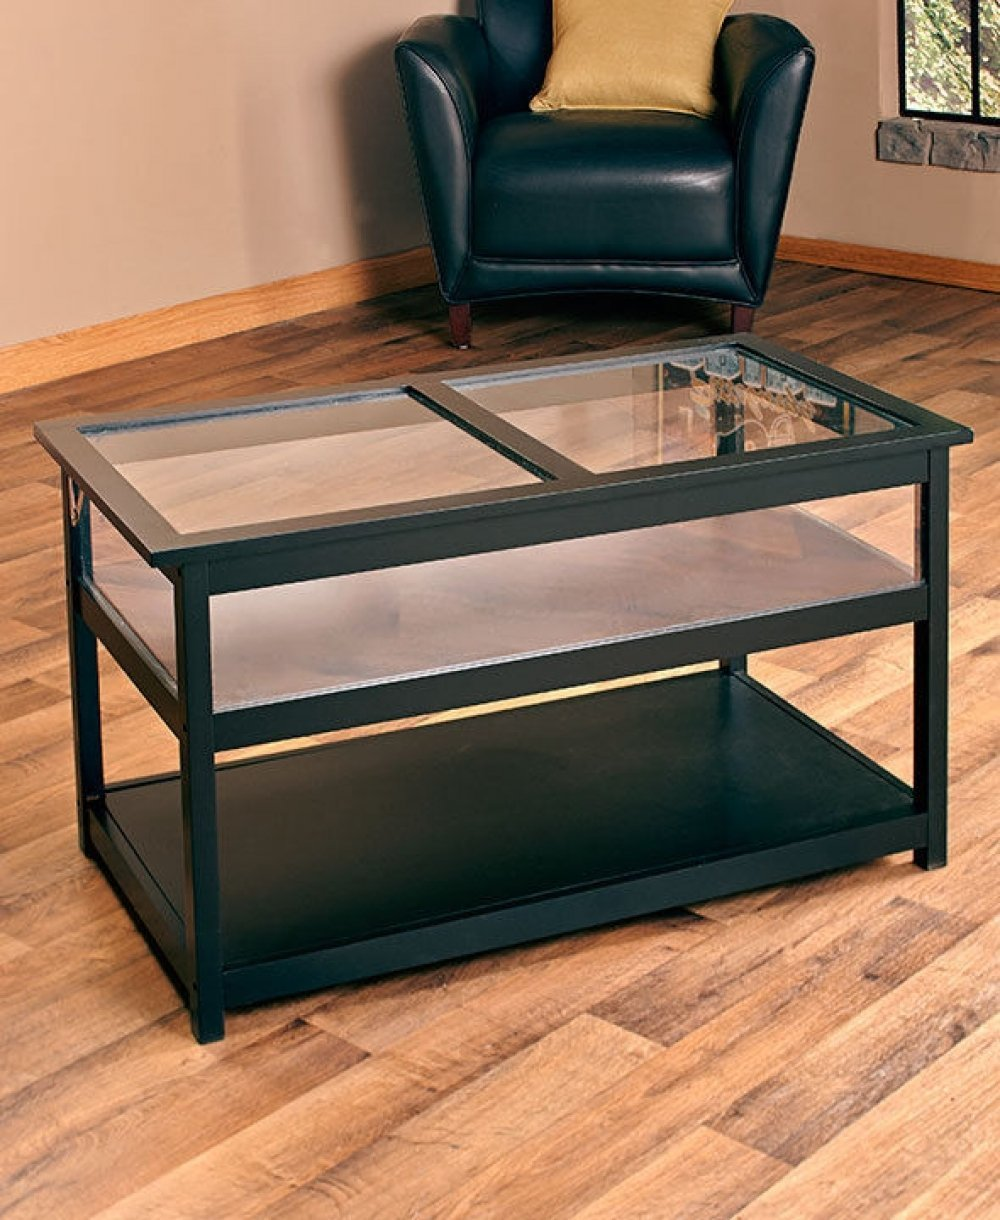 Buy Kissemoji Black Coffee Table Display Case Glass Top End Side - Shadow box side table